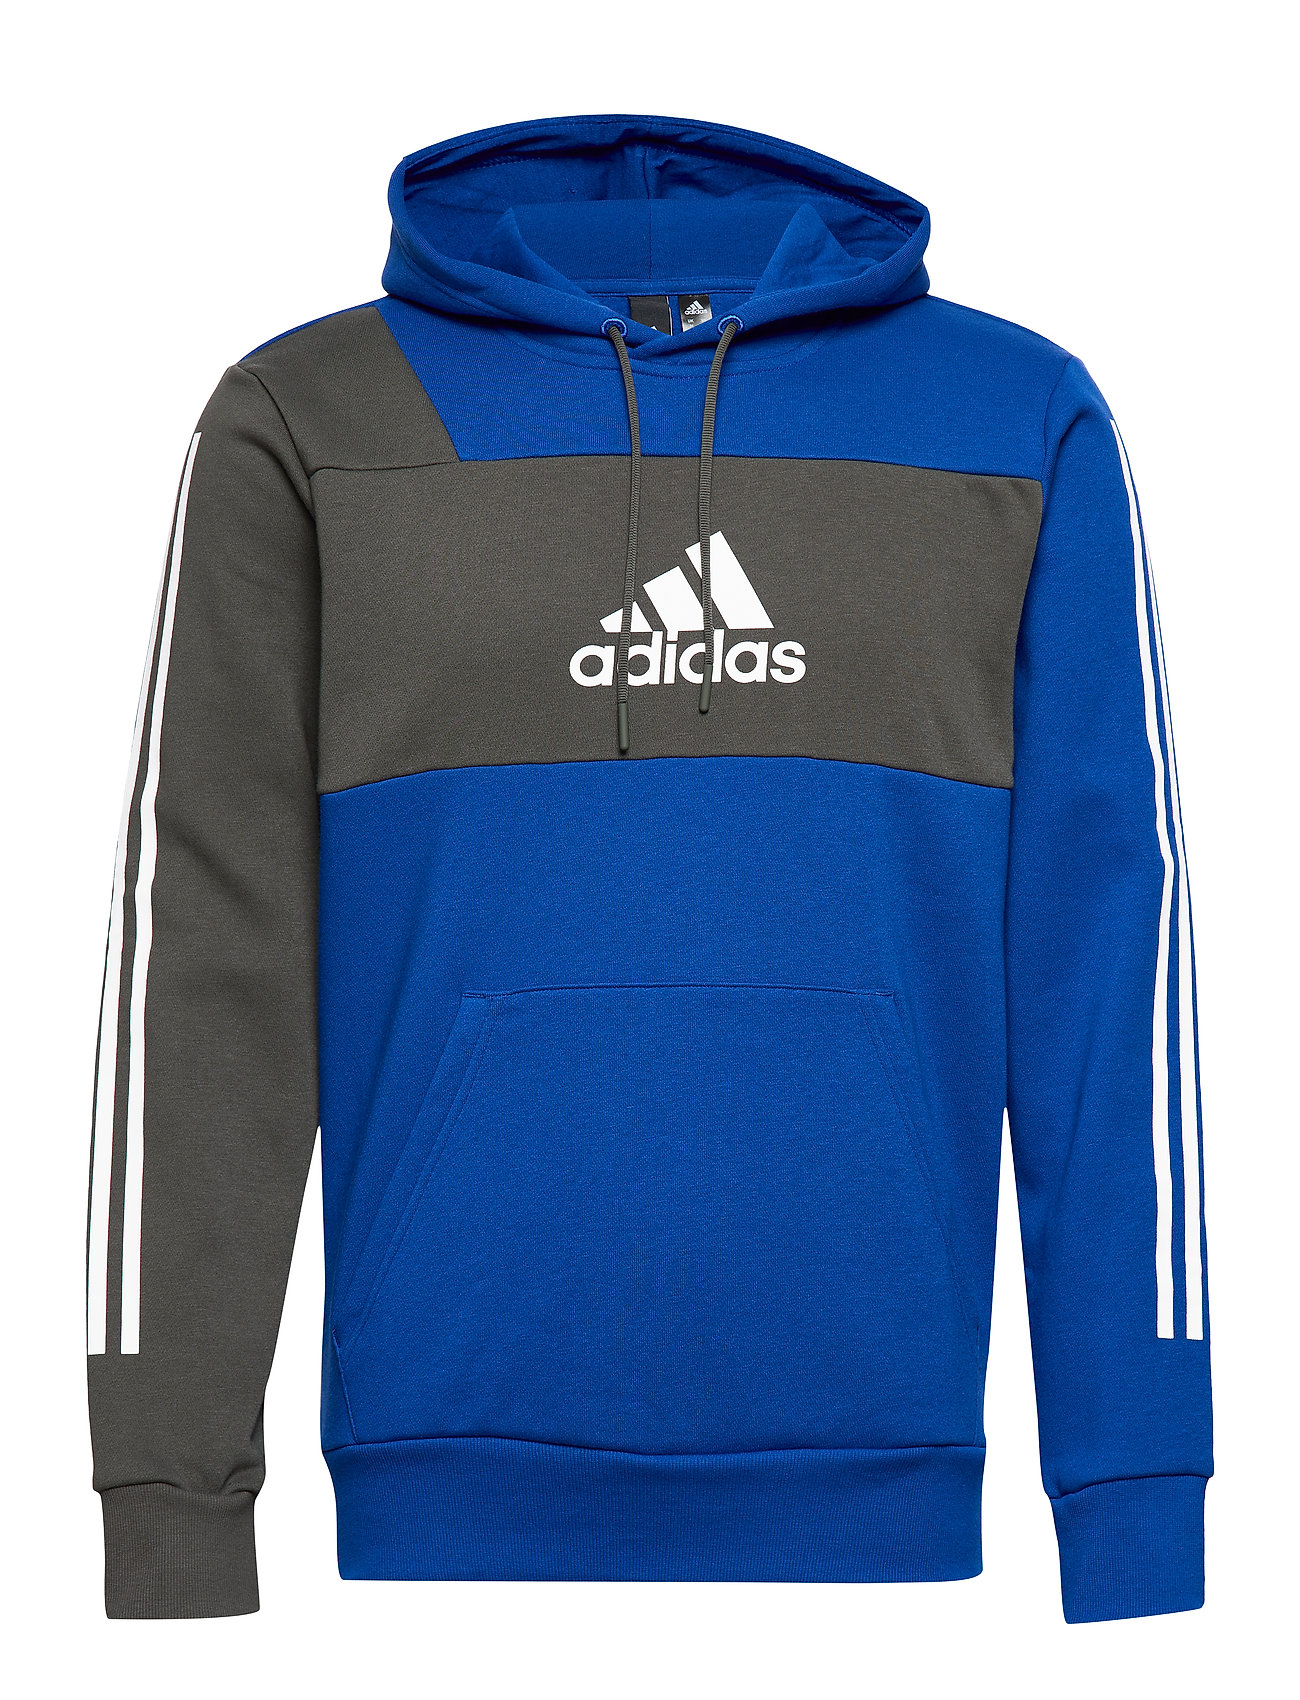 adidas Performance M SID PO brnd - CROYAL/LEGEAR